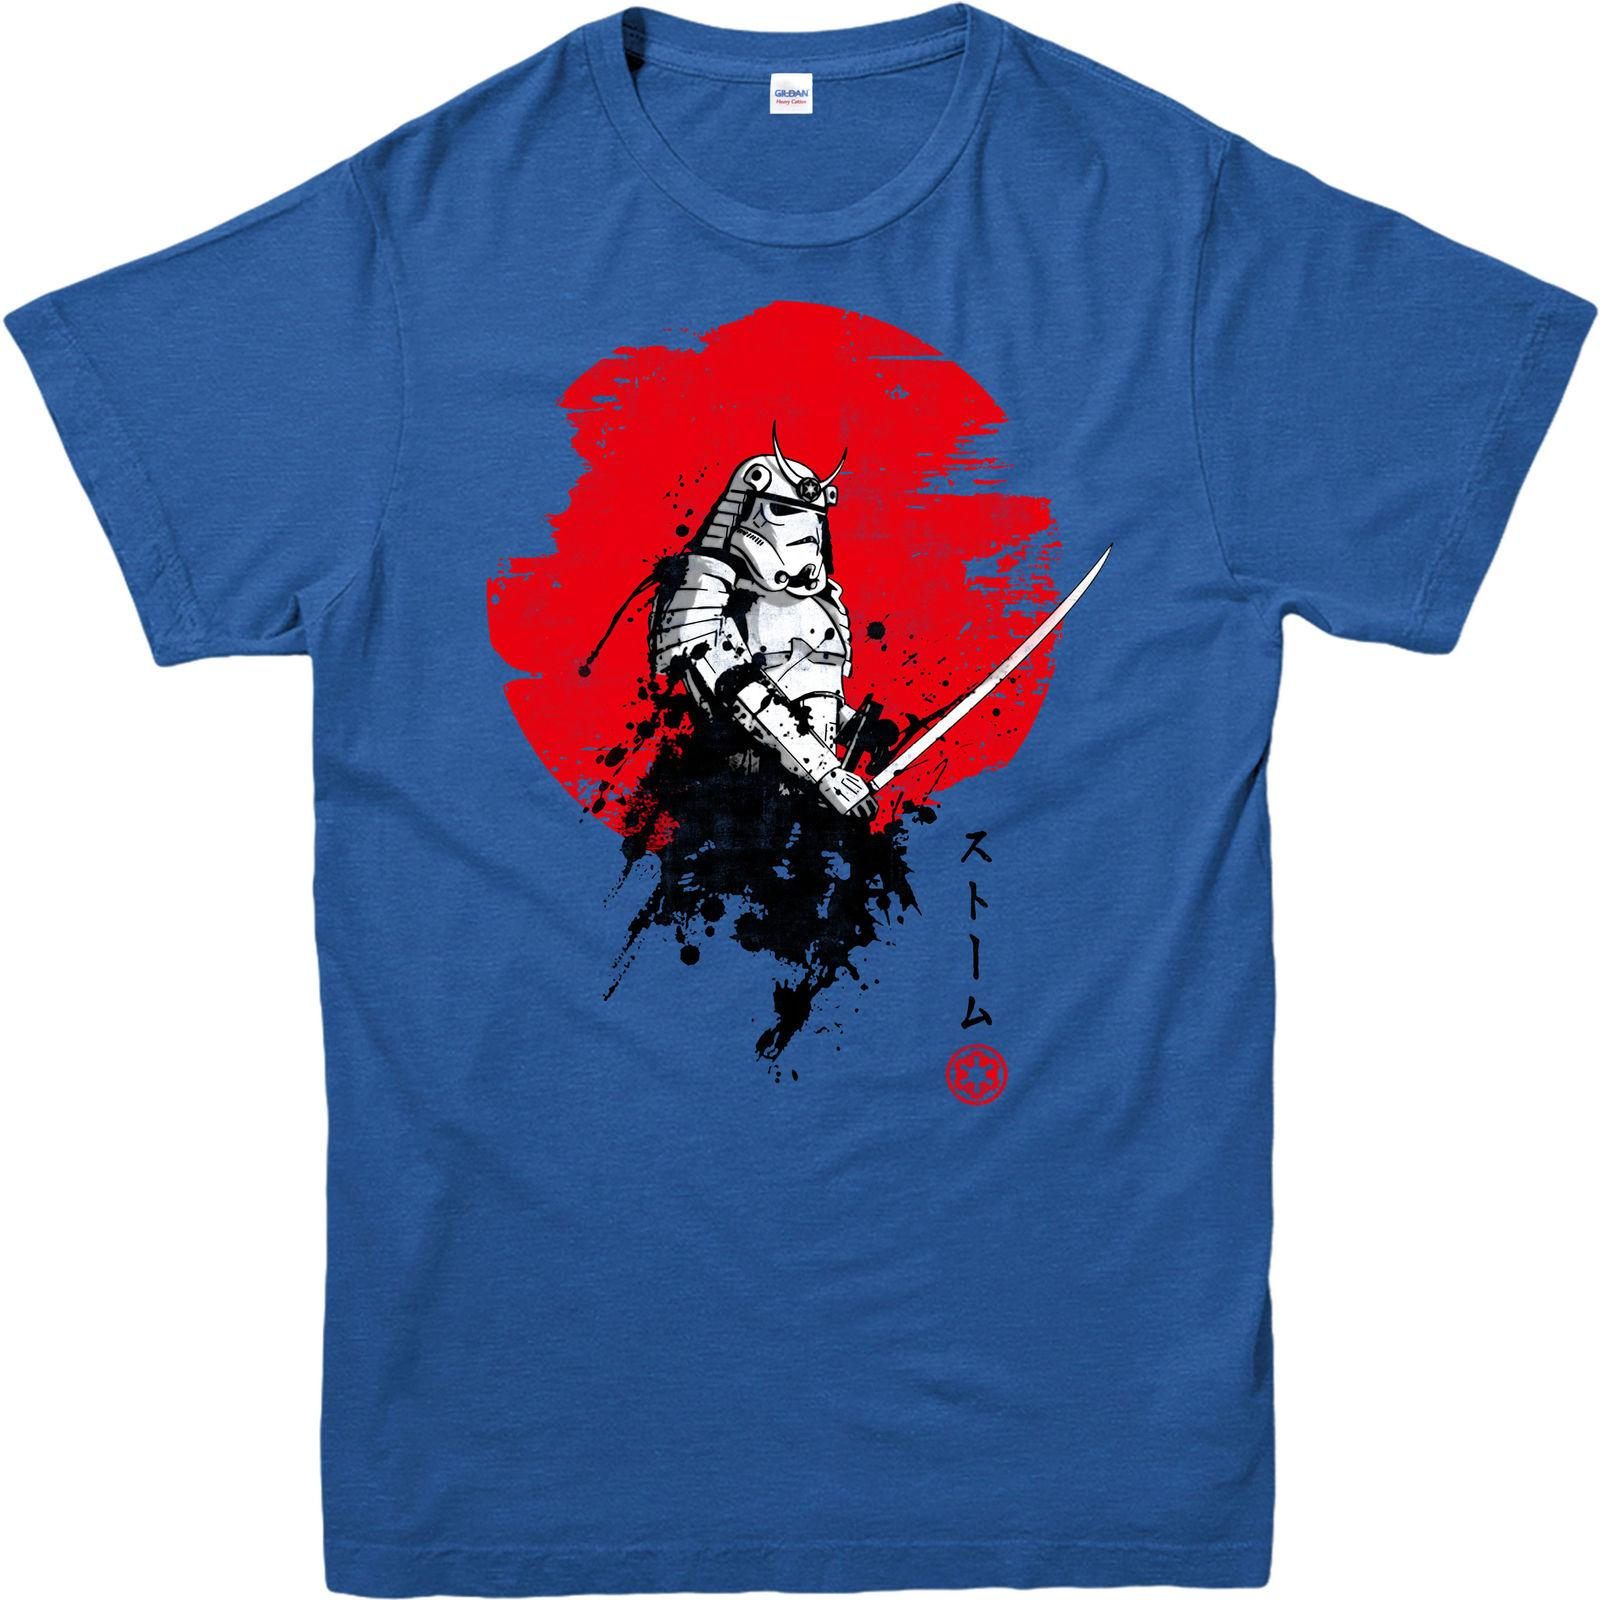 46279a3ea StormTrooper T Shirt,StormTrooper Samurai Spoof,Japanese,Adult And Kids  Sizes Cool Shirts Online All Shirts From Shirtsthatrock, $11.01| DHgate.Com